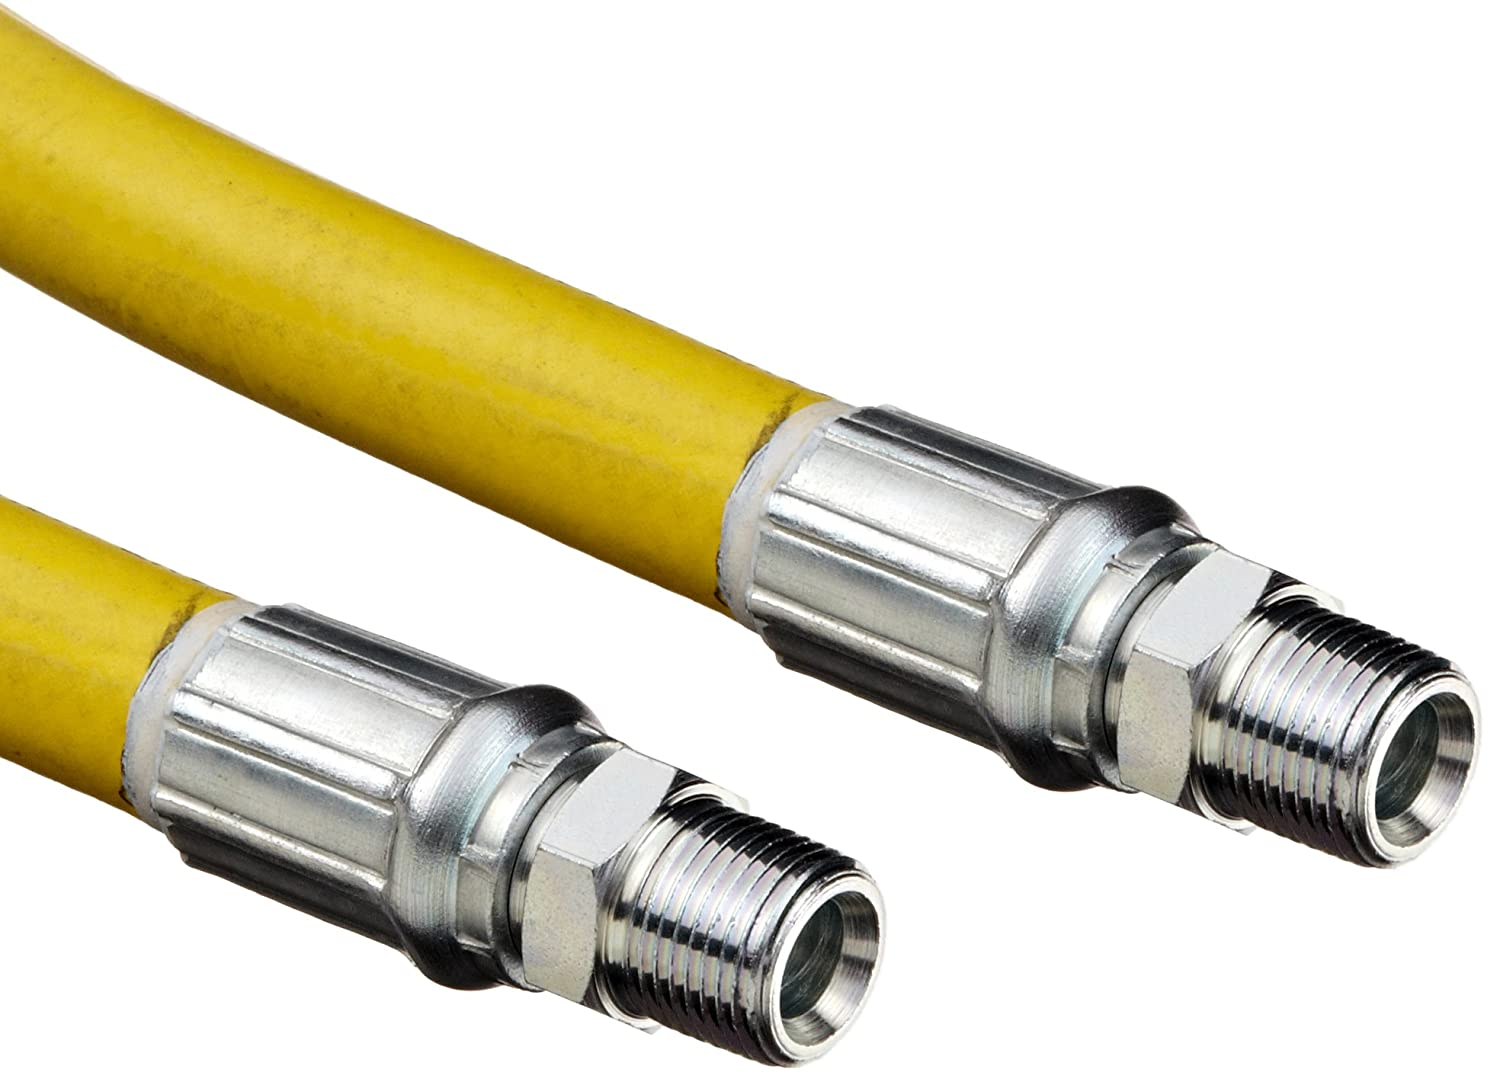 Image of Cleaning Tools Goodyear EP Gorilla Yellow Rubber Multipurpose Industrial Hose Assembly, 3/8' Steel Hydraulic Coupling Connection, 500 PSI Maximum Pressure, 25' Length, 3/8' ID